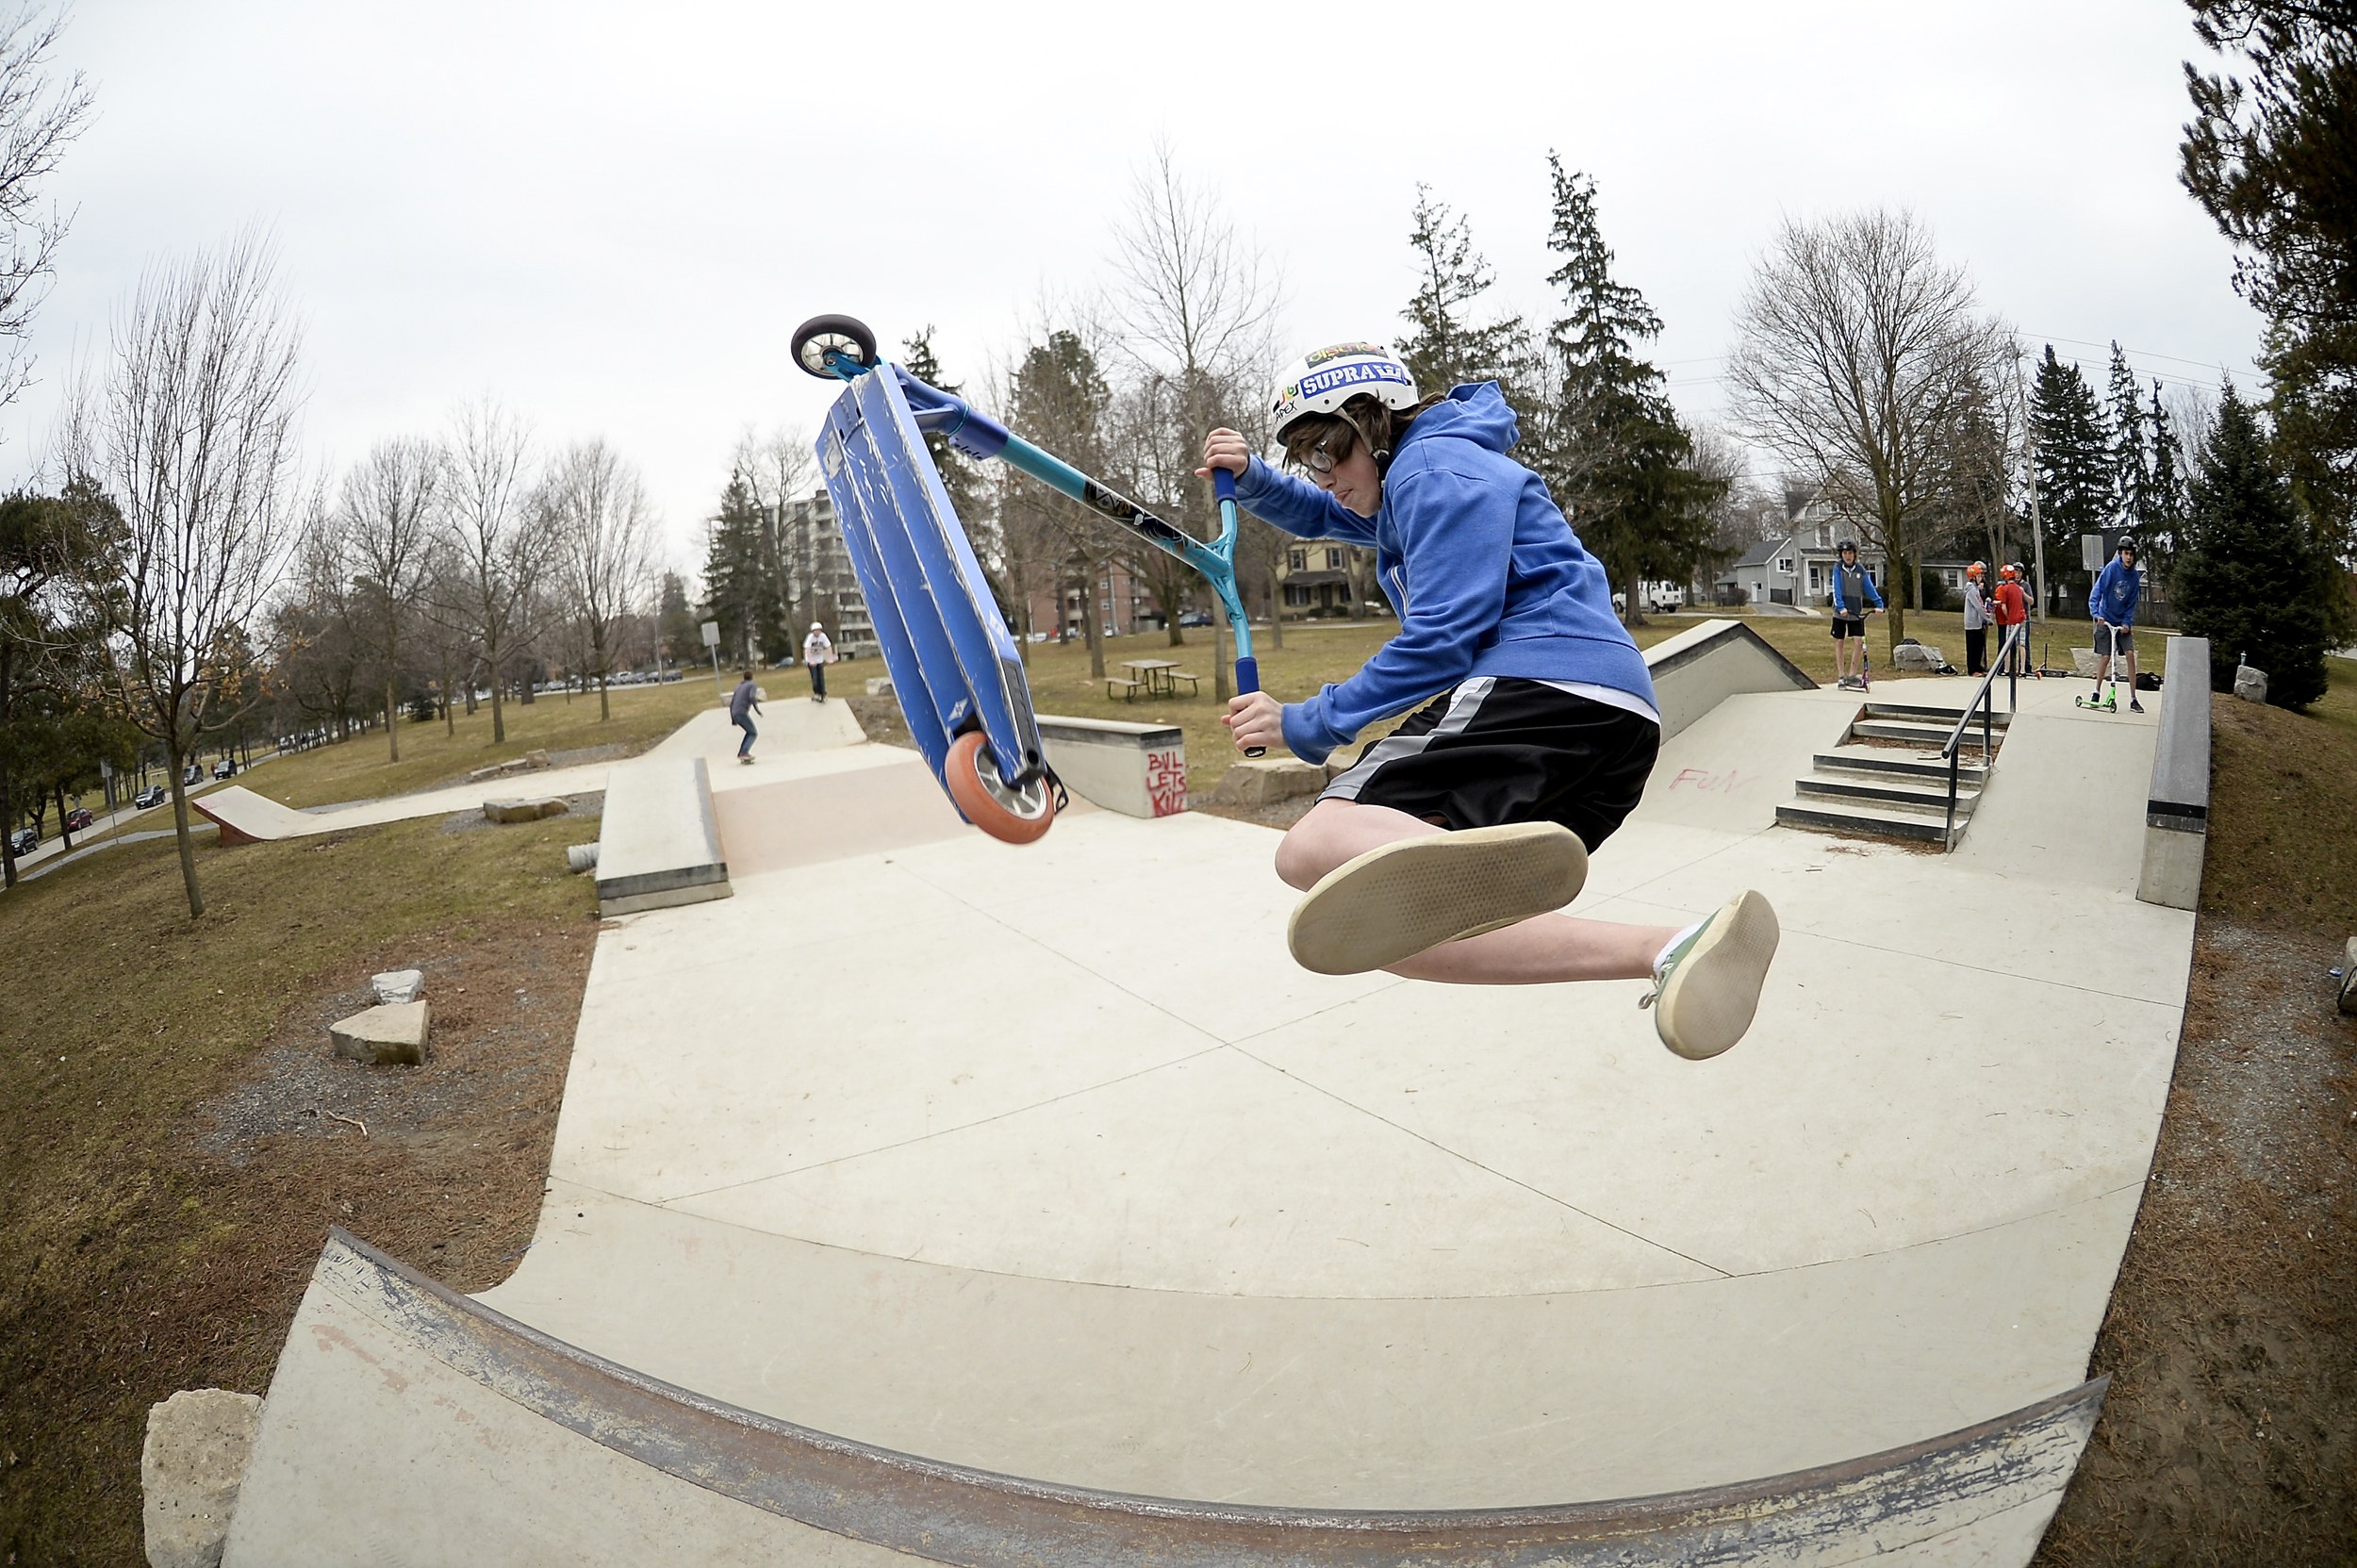 Taylor Blair, 14, performs a bri flip at the skate park in Springbank Park in London, Ont. on Friday April 3, 2015. Warm weather and a holiday brought lots of kids out to the park to ride.